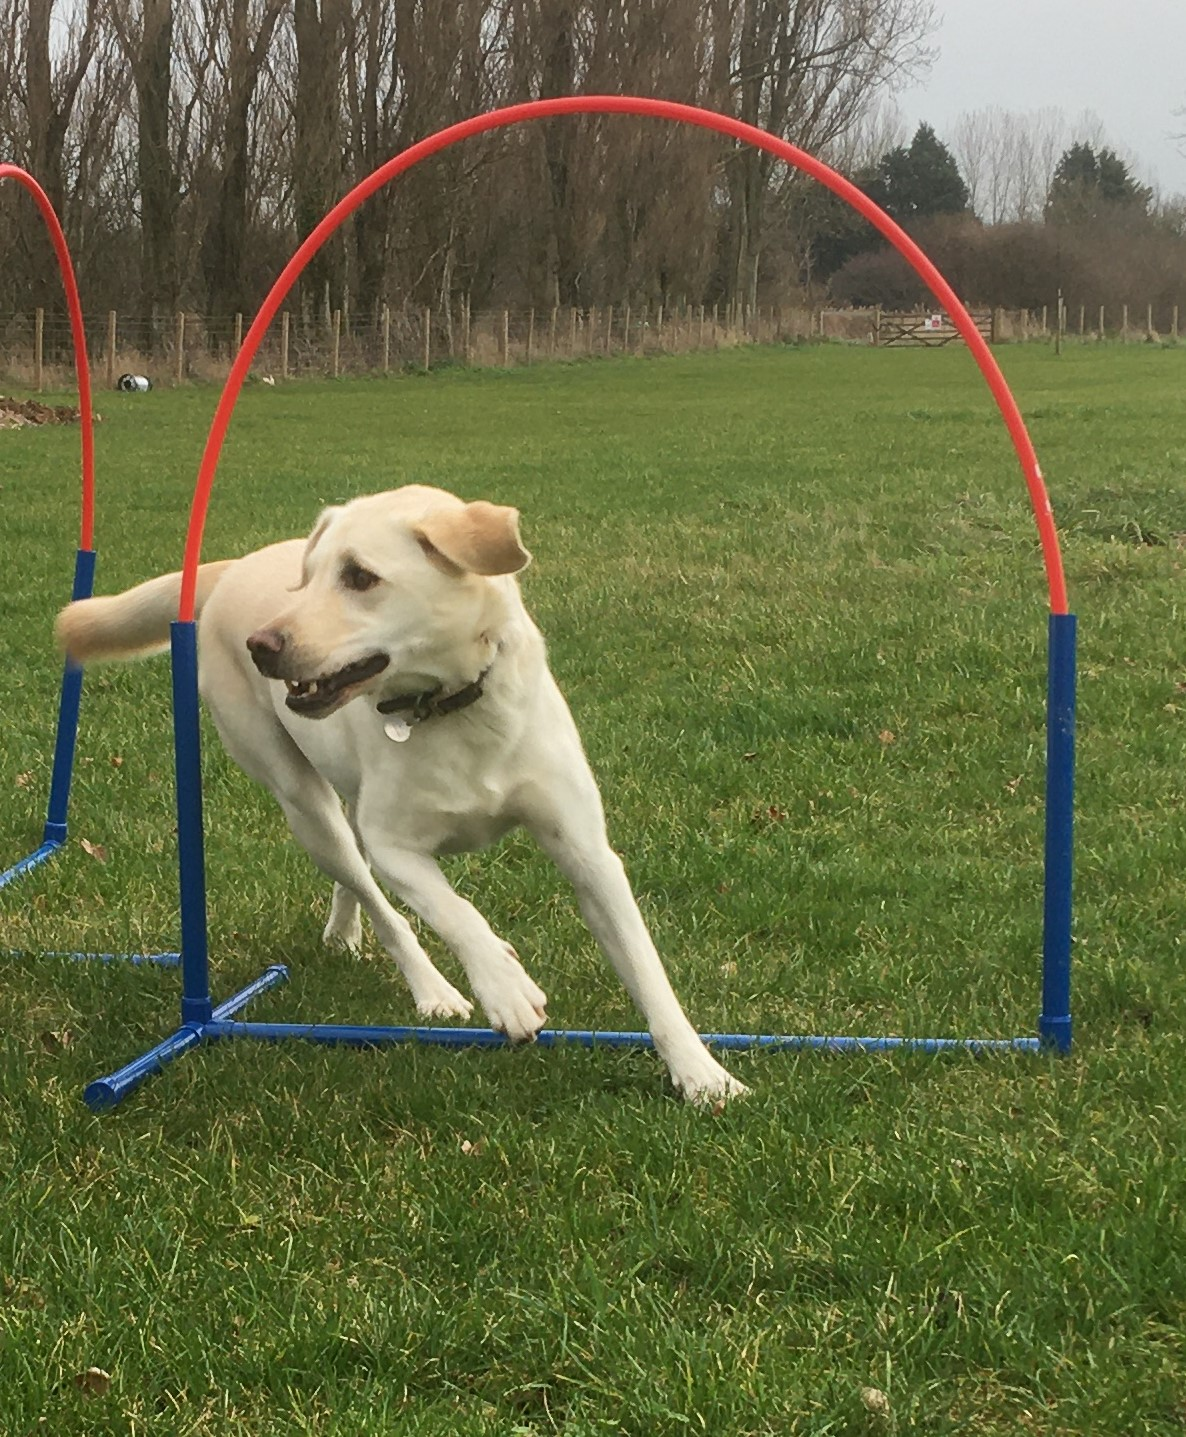 New for February 2020 - a new venue and introducing canine hoopers